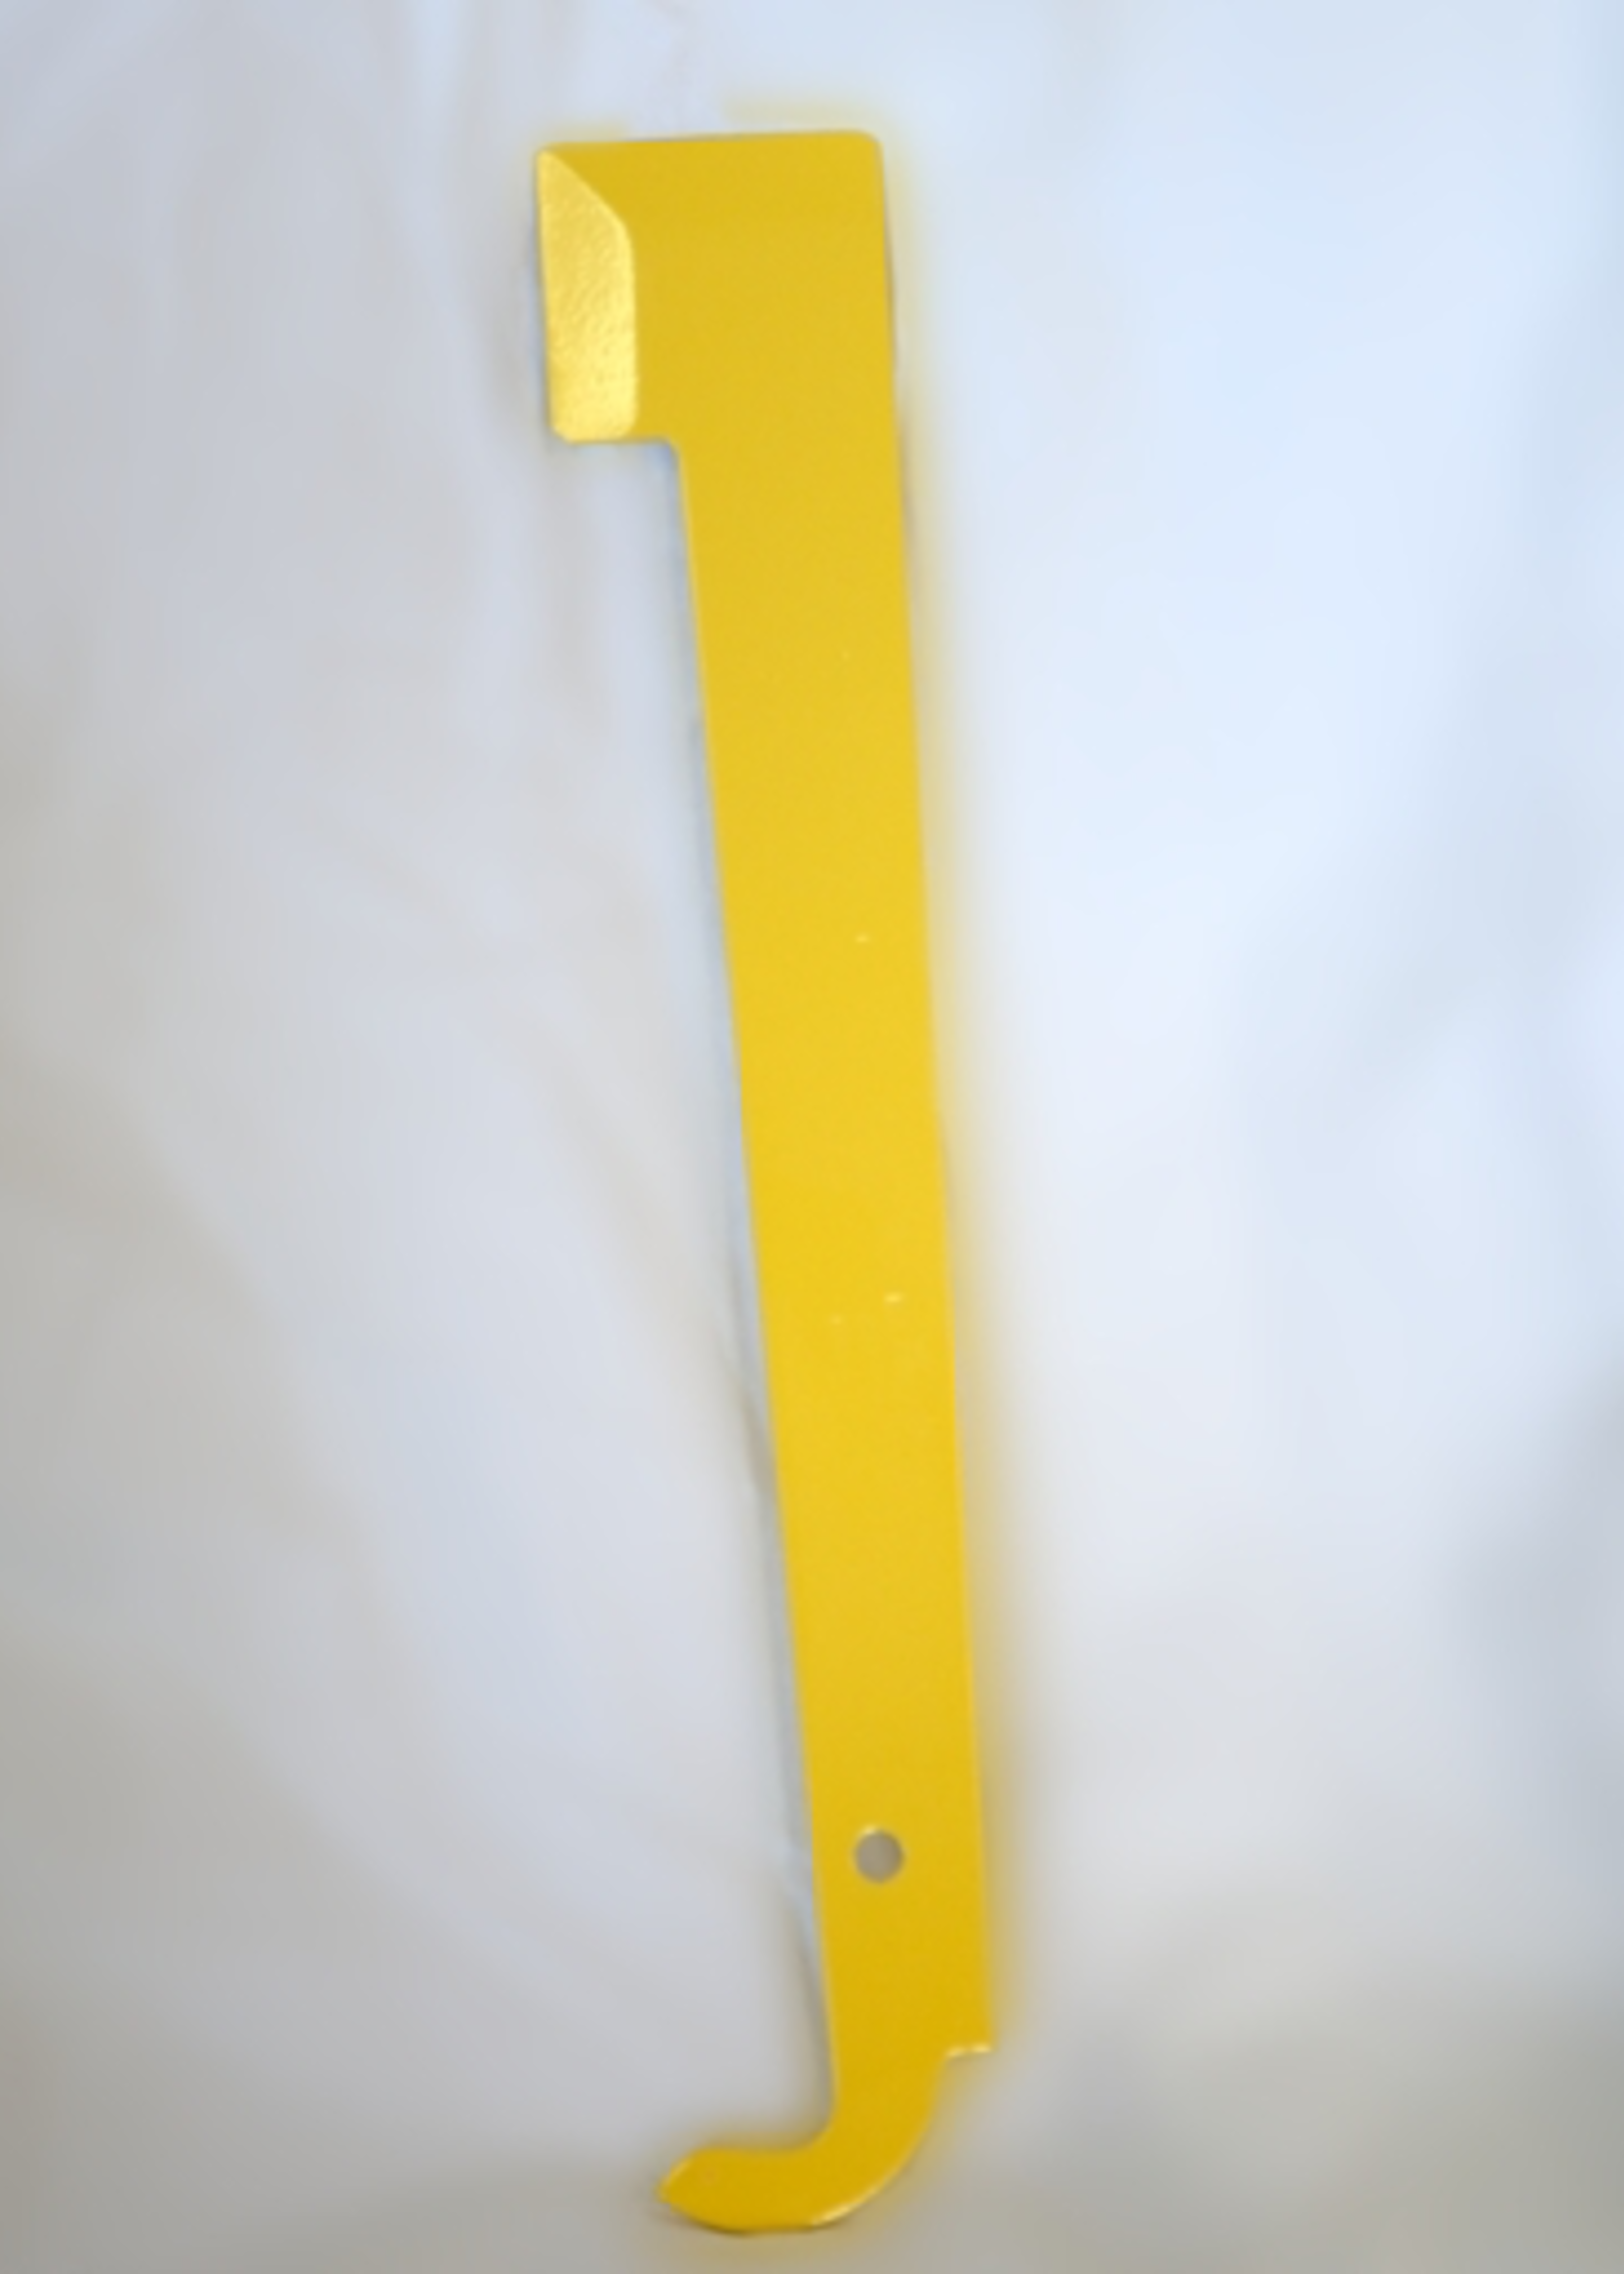 Maxant J Hook Hive tool - Made in USA